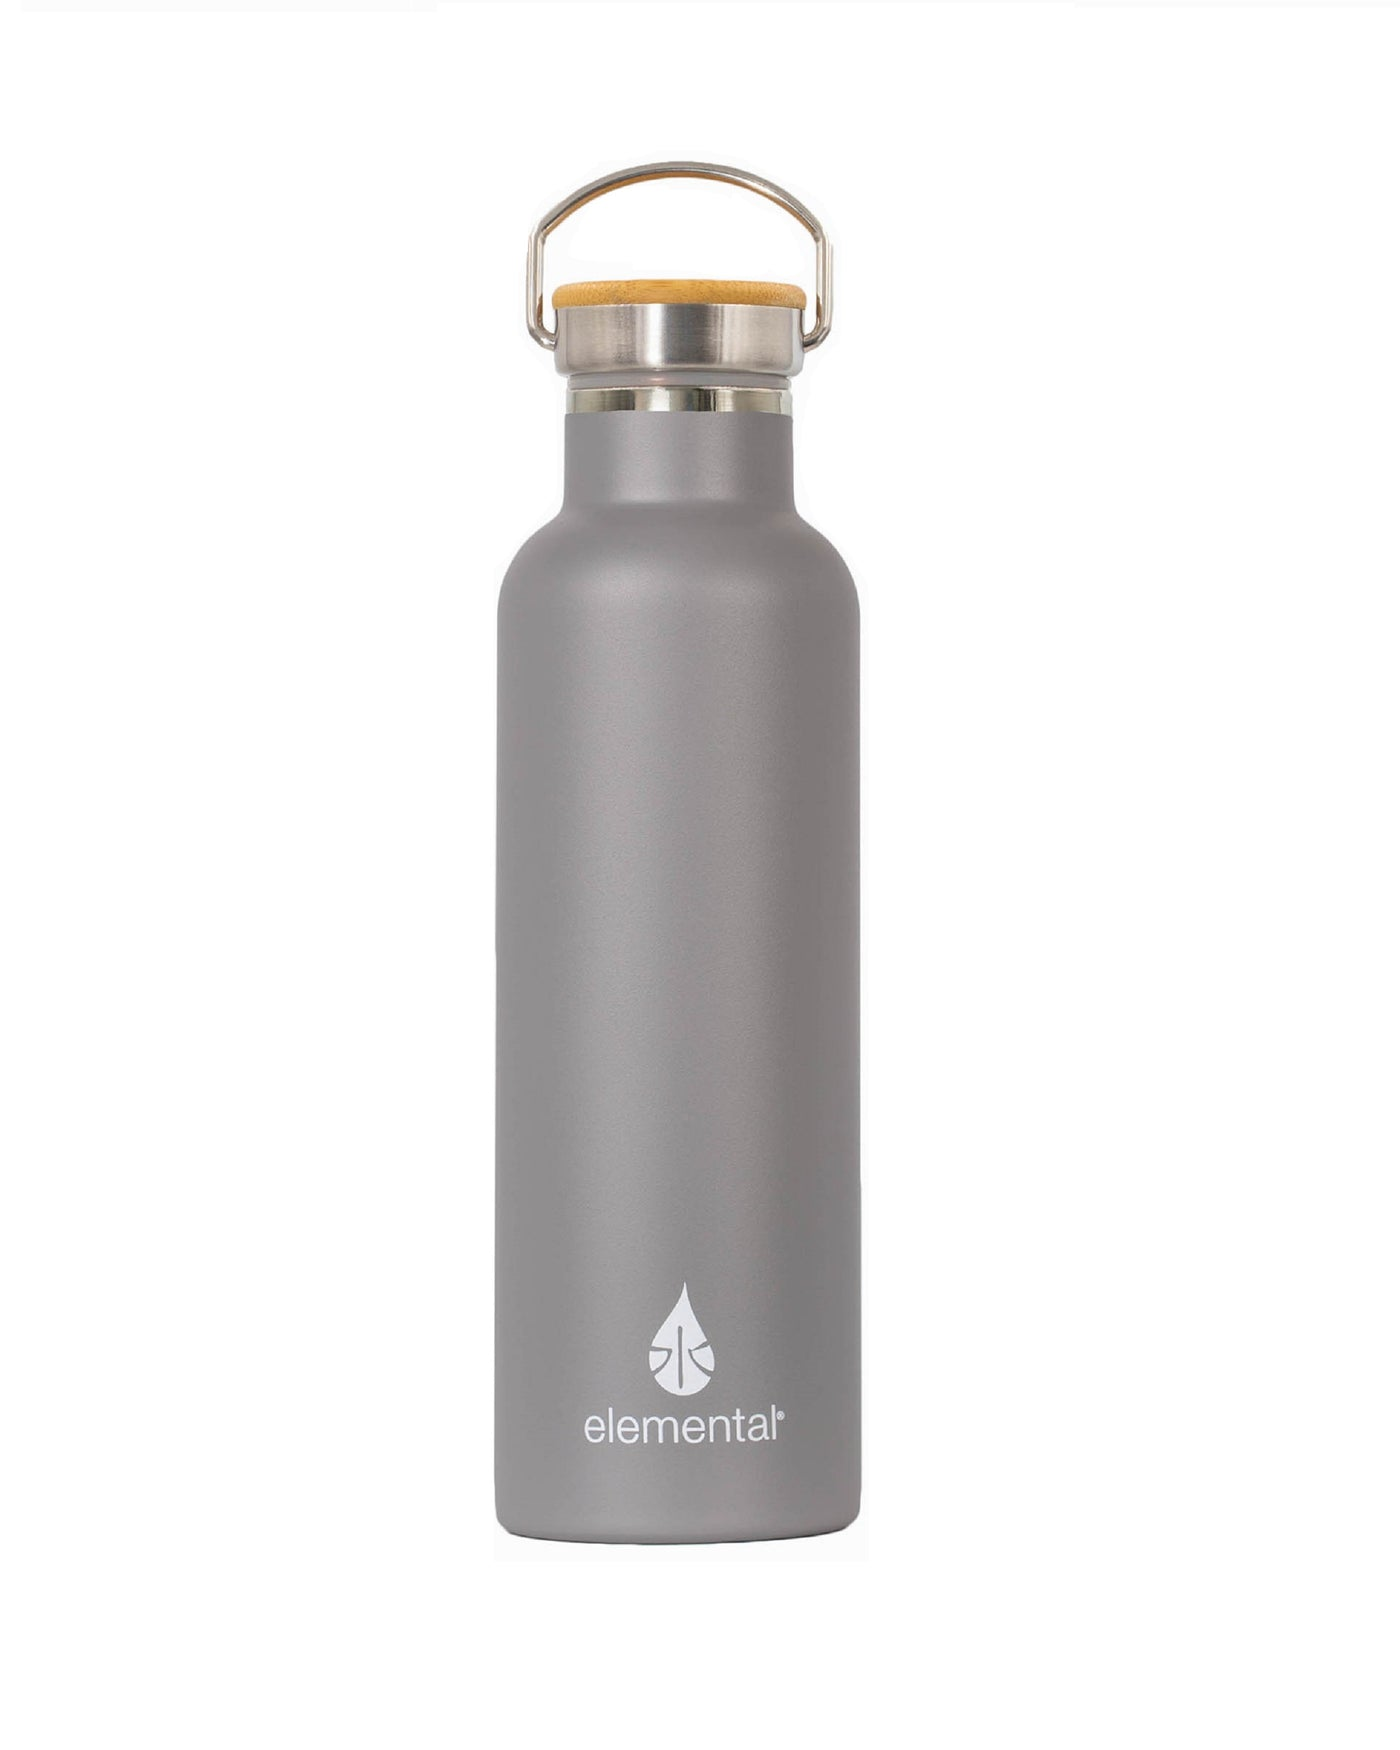 Elemental Stainless Steel Classic Water Bottle - 25oz Graphite - Elemental Gifts